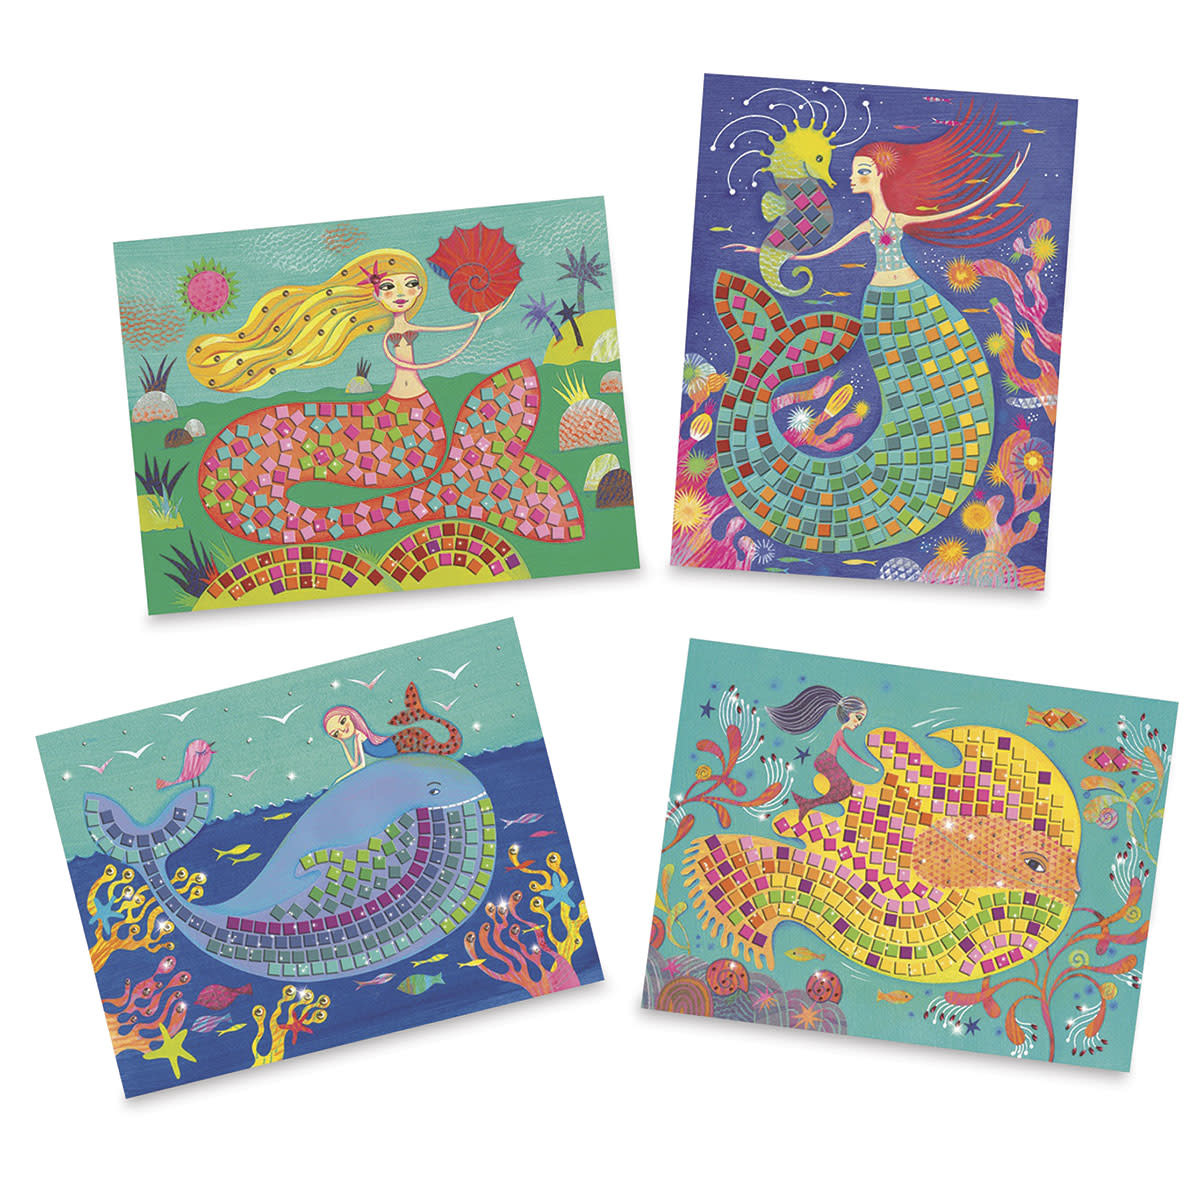 Sticker Mosaic Mermaids Song-3